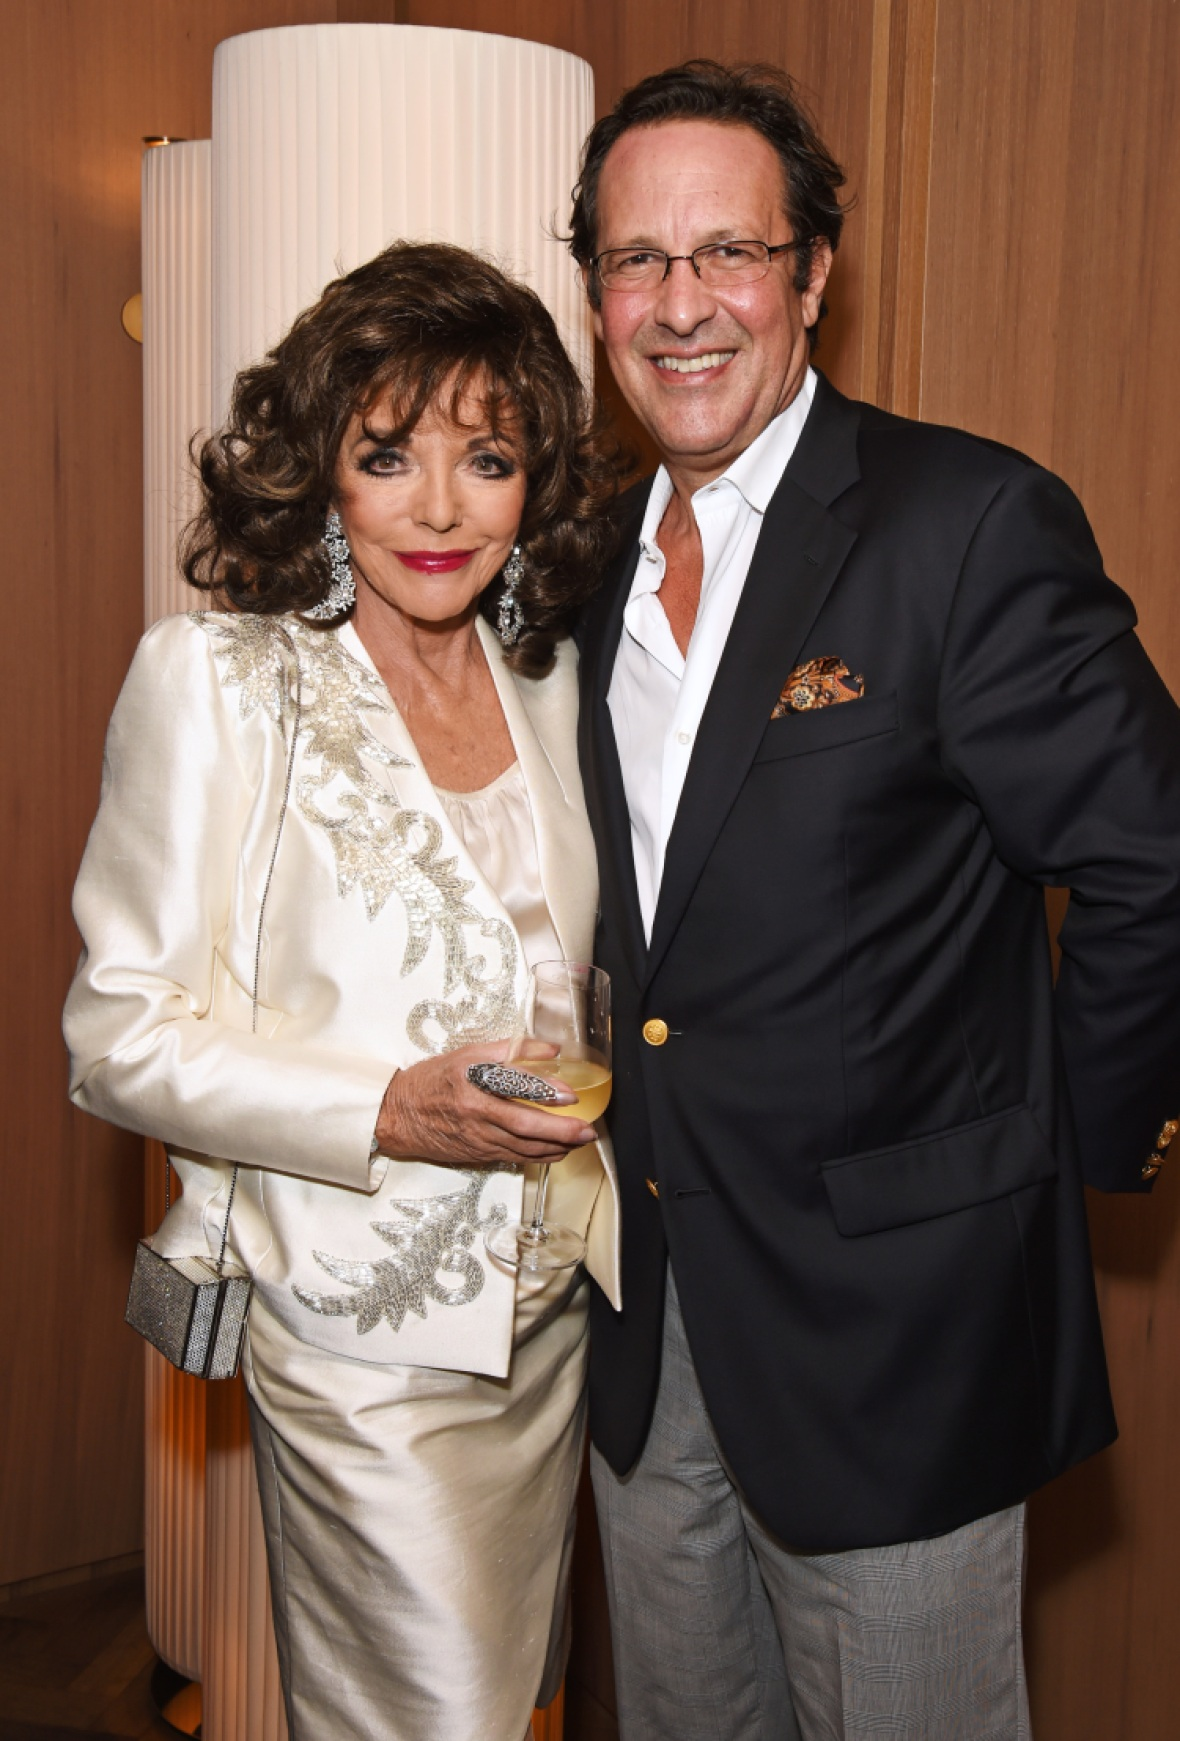 joan and her husband, percy. (photo credit: getty images)